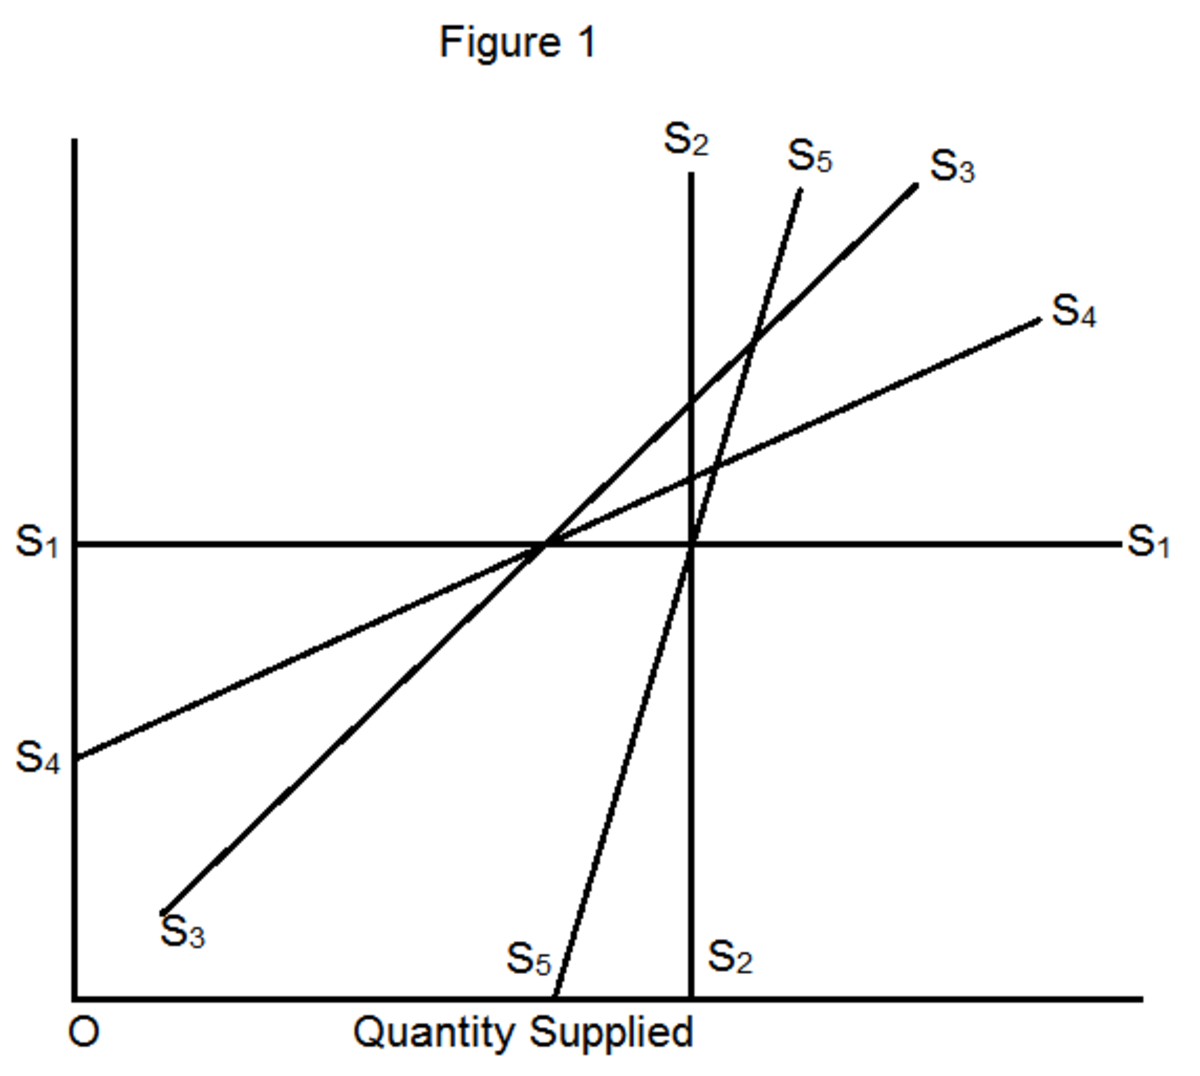 Elasticity Of Supply Meaning Types Measurement Determinants And Significance Hubpages